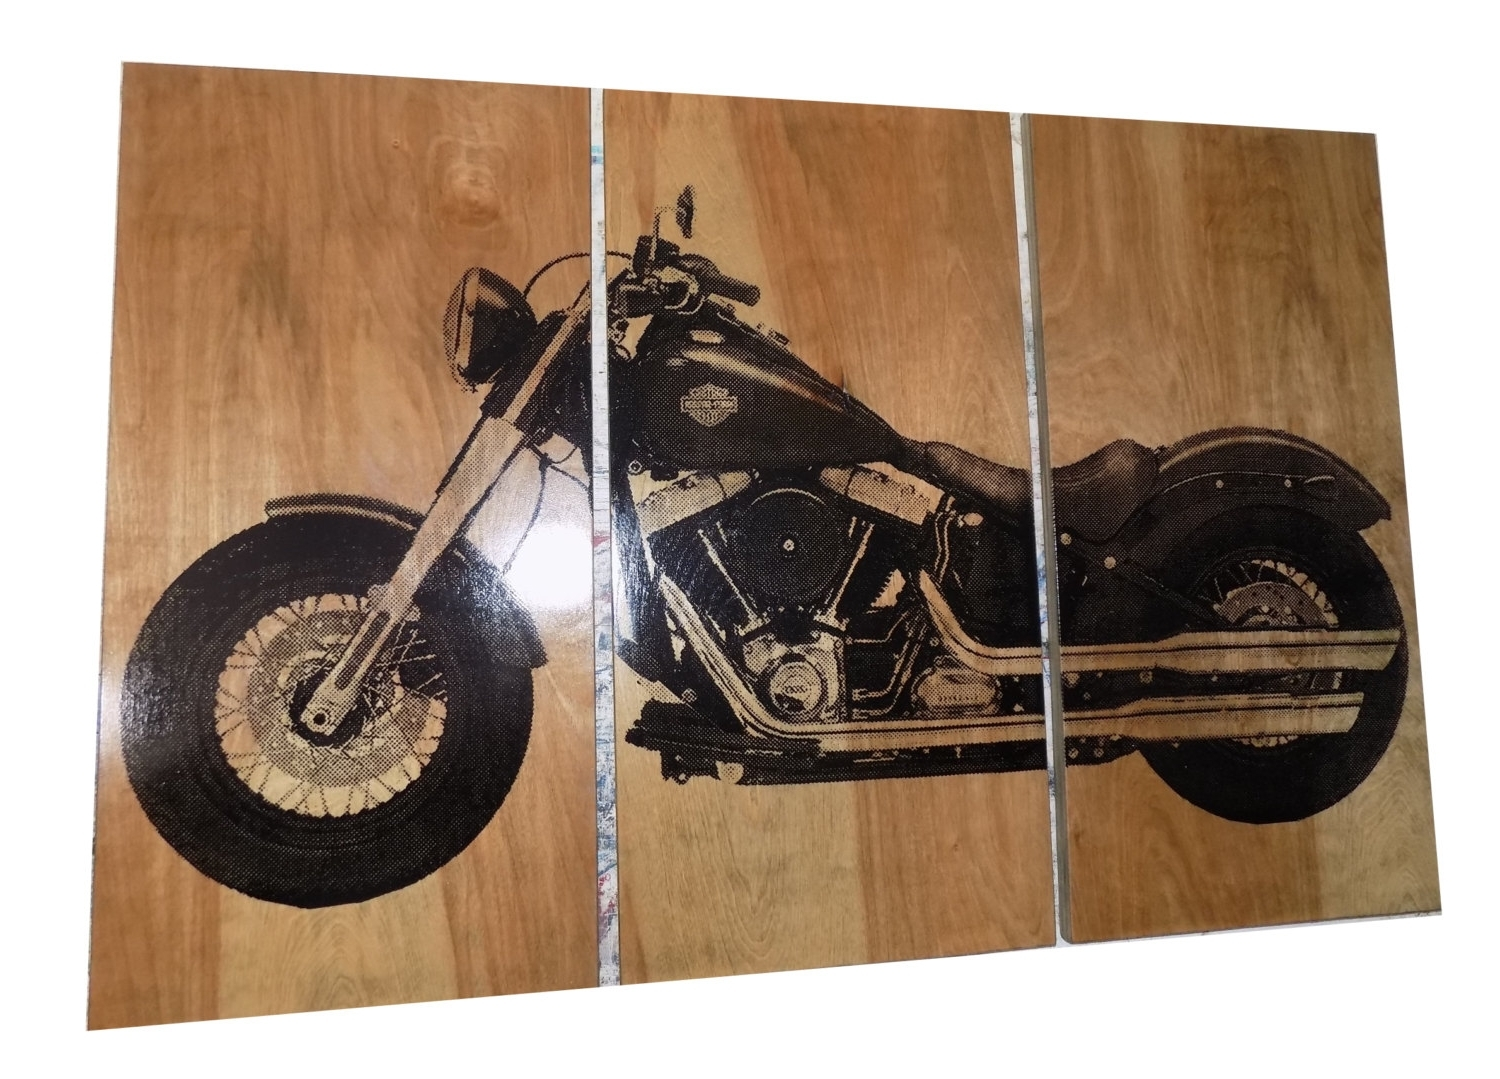 Most Up To Date Harley Davidson Soft Tail Nice Harley Davidson Wall Art – Prix Dalle Pertaining To Harley Davidson Wall Art (View 11 of 15)